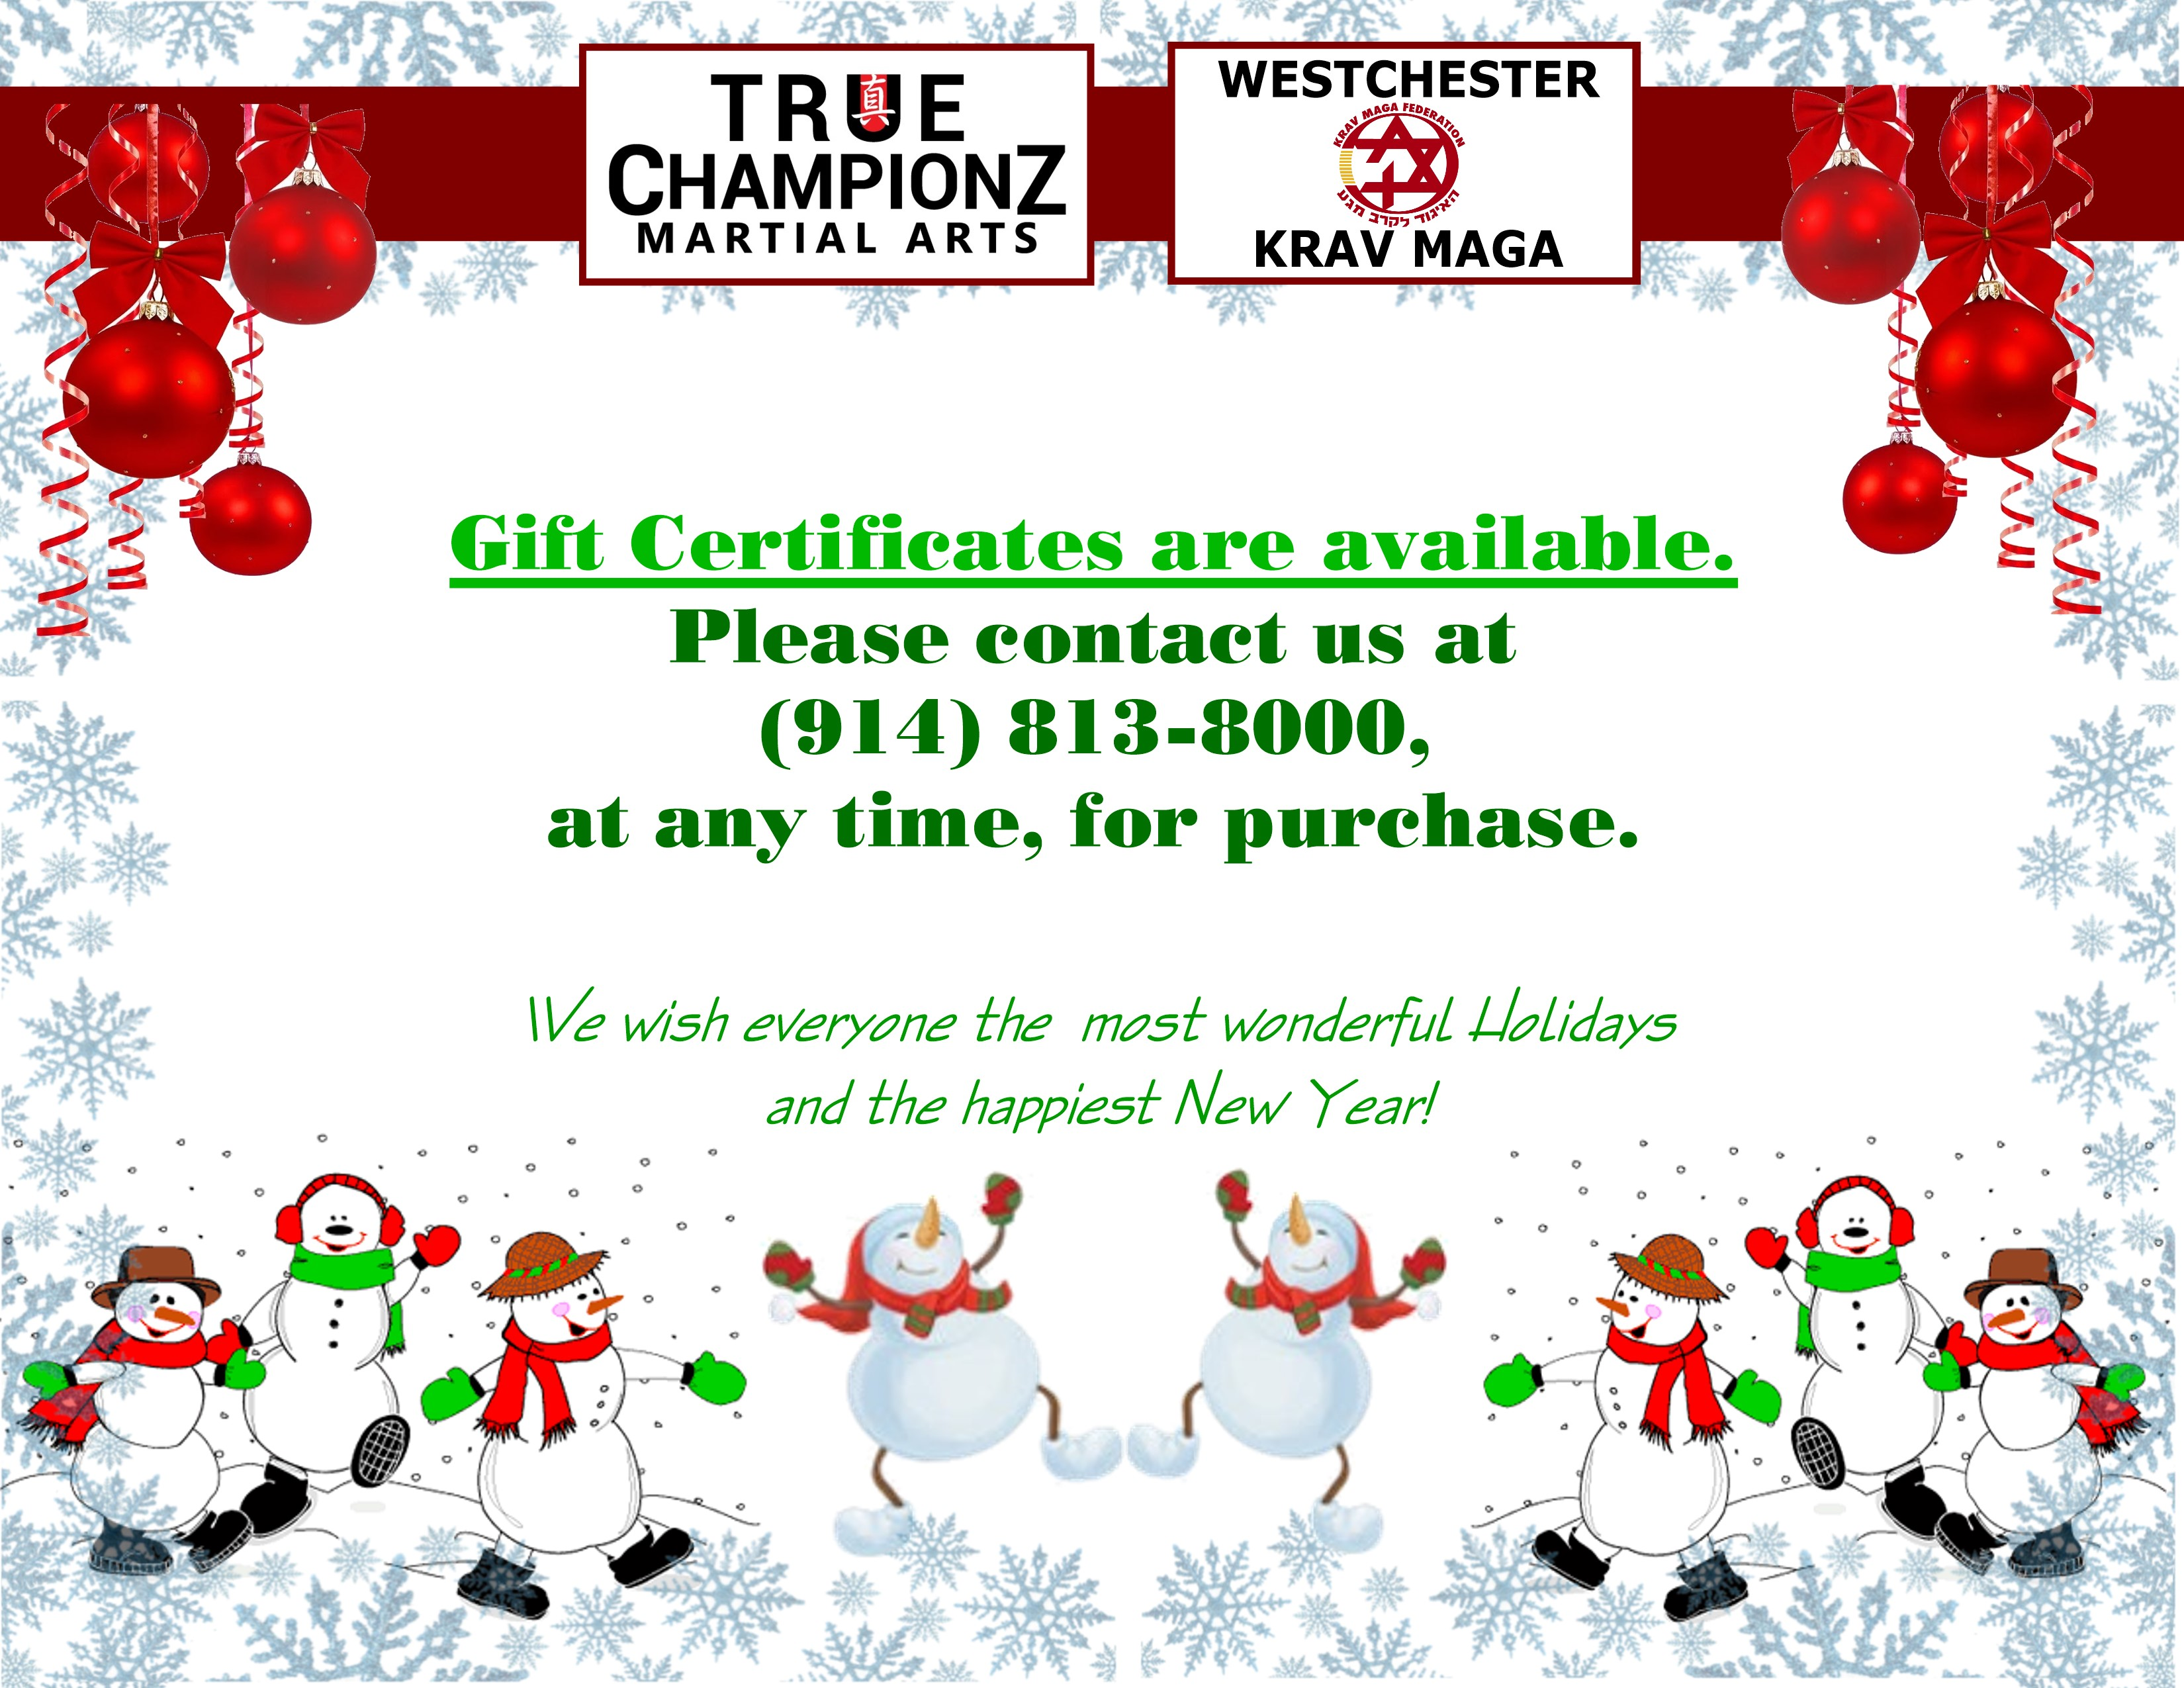 Truechampionz gift certificates are available gift certificates are available xflitez Gallery